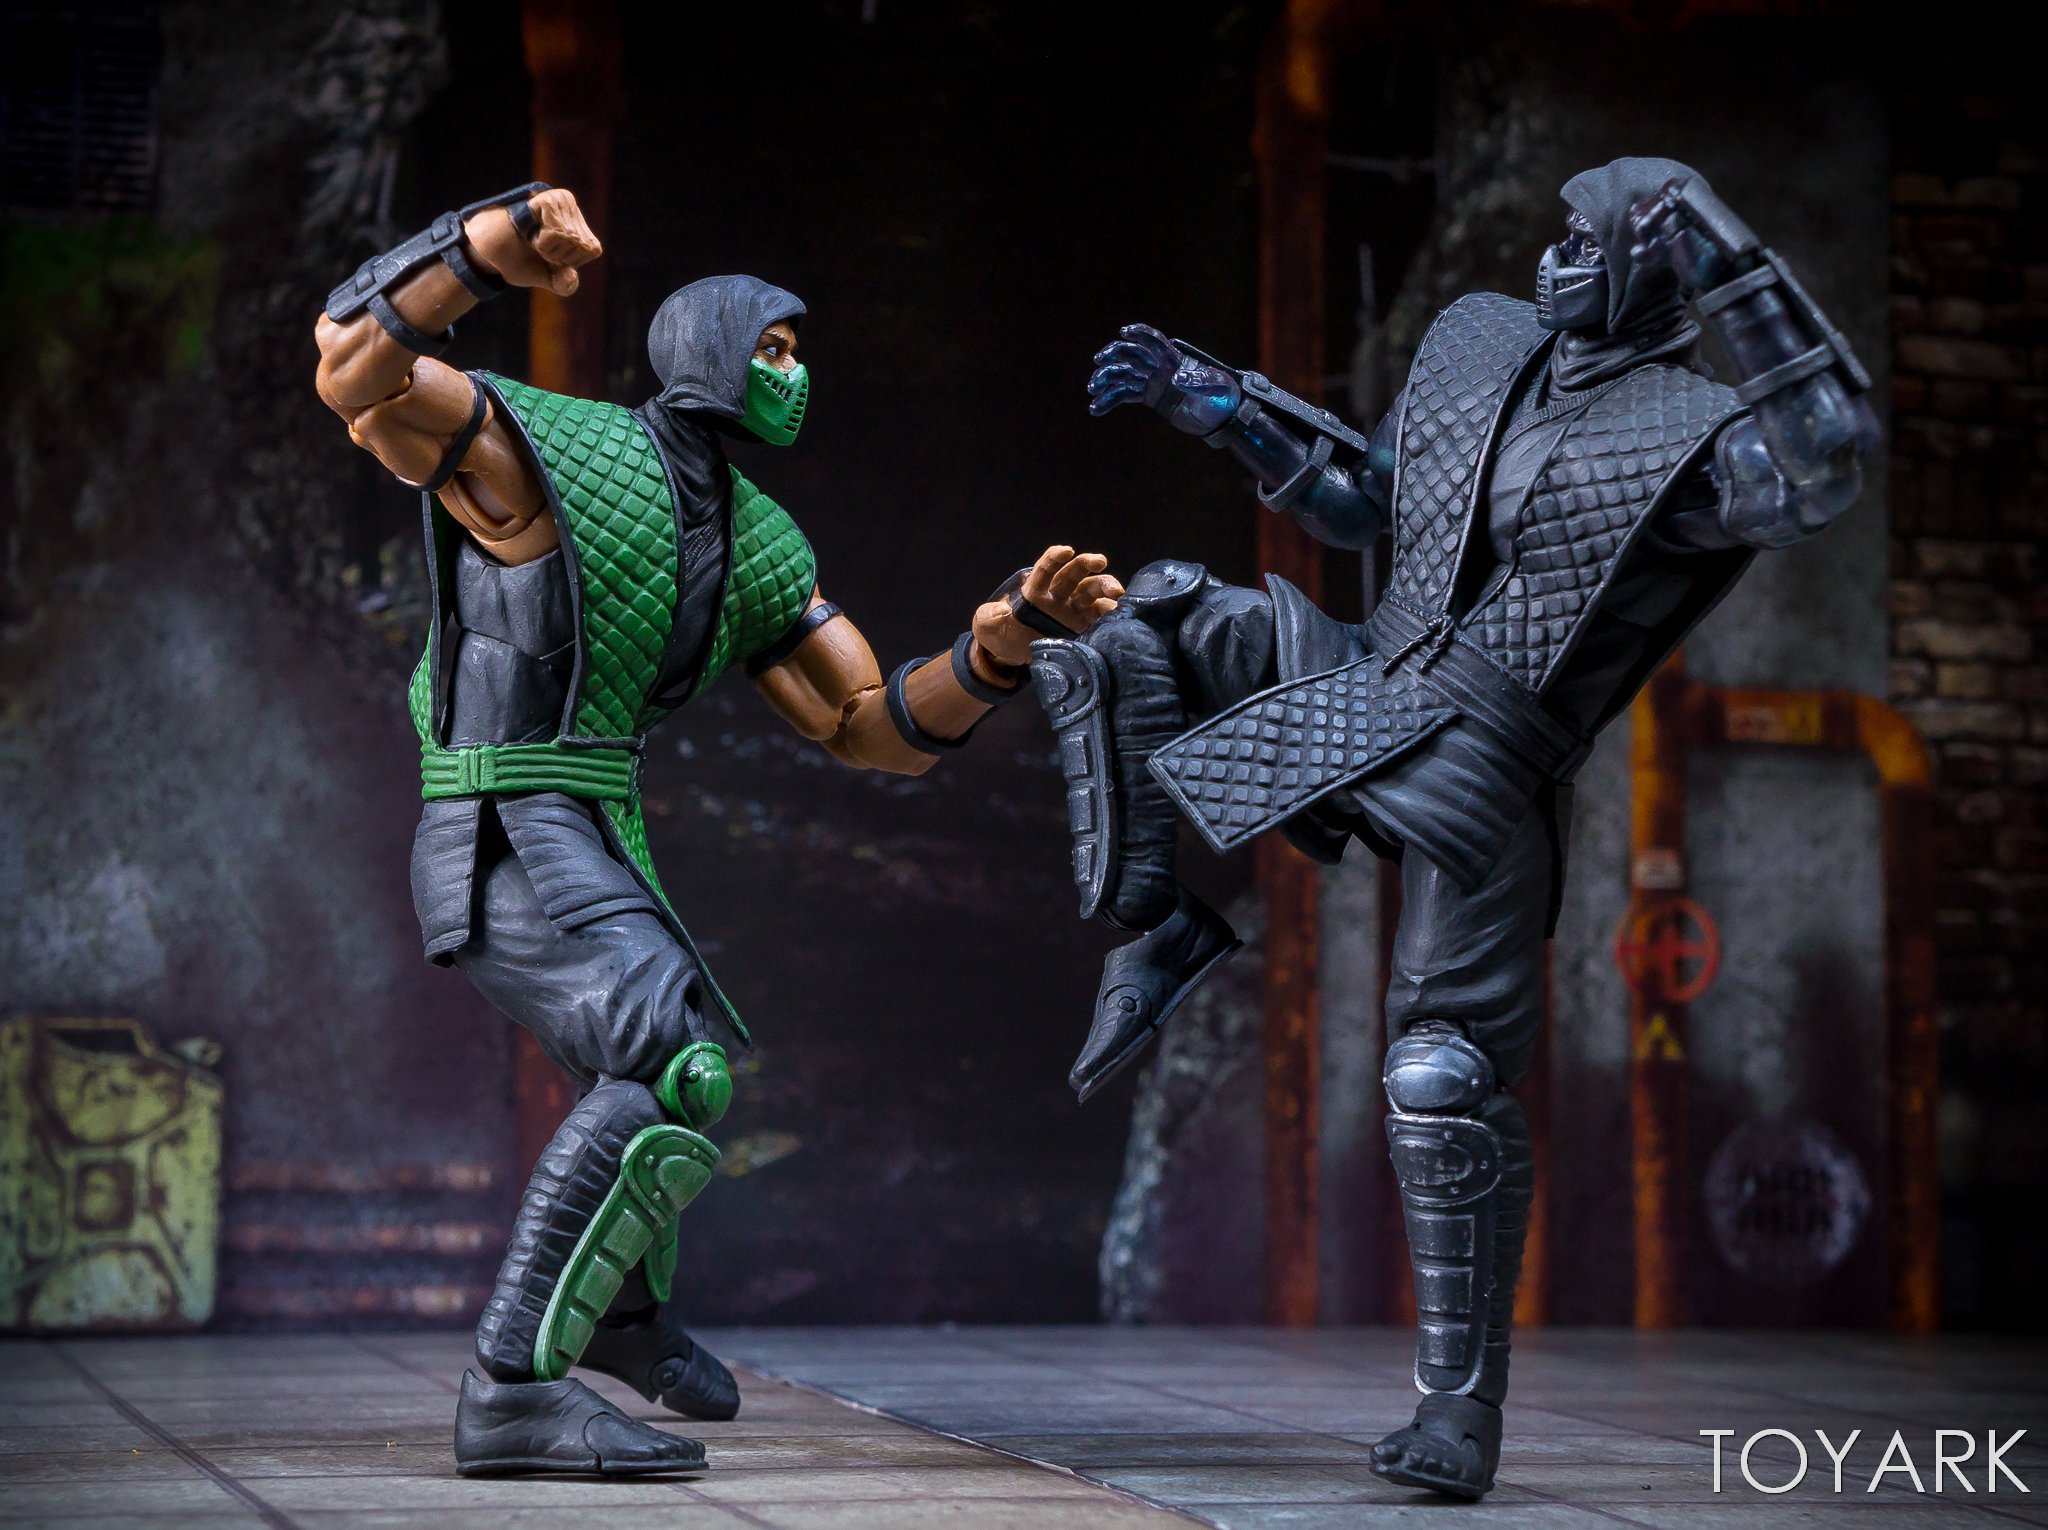 http://news.toyark.com/wp-content/uploads/sites/4/2018/02/Storm-Mortal-Kombat-Reptile-049.jpg